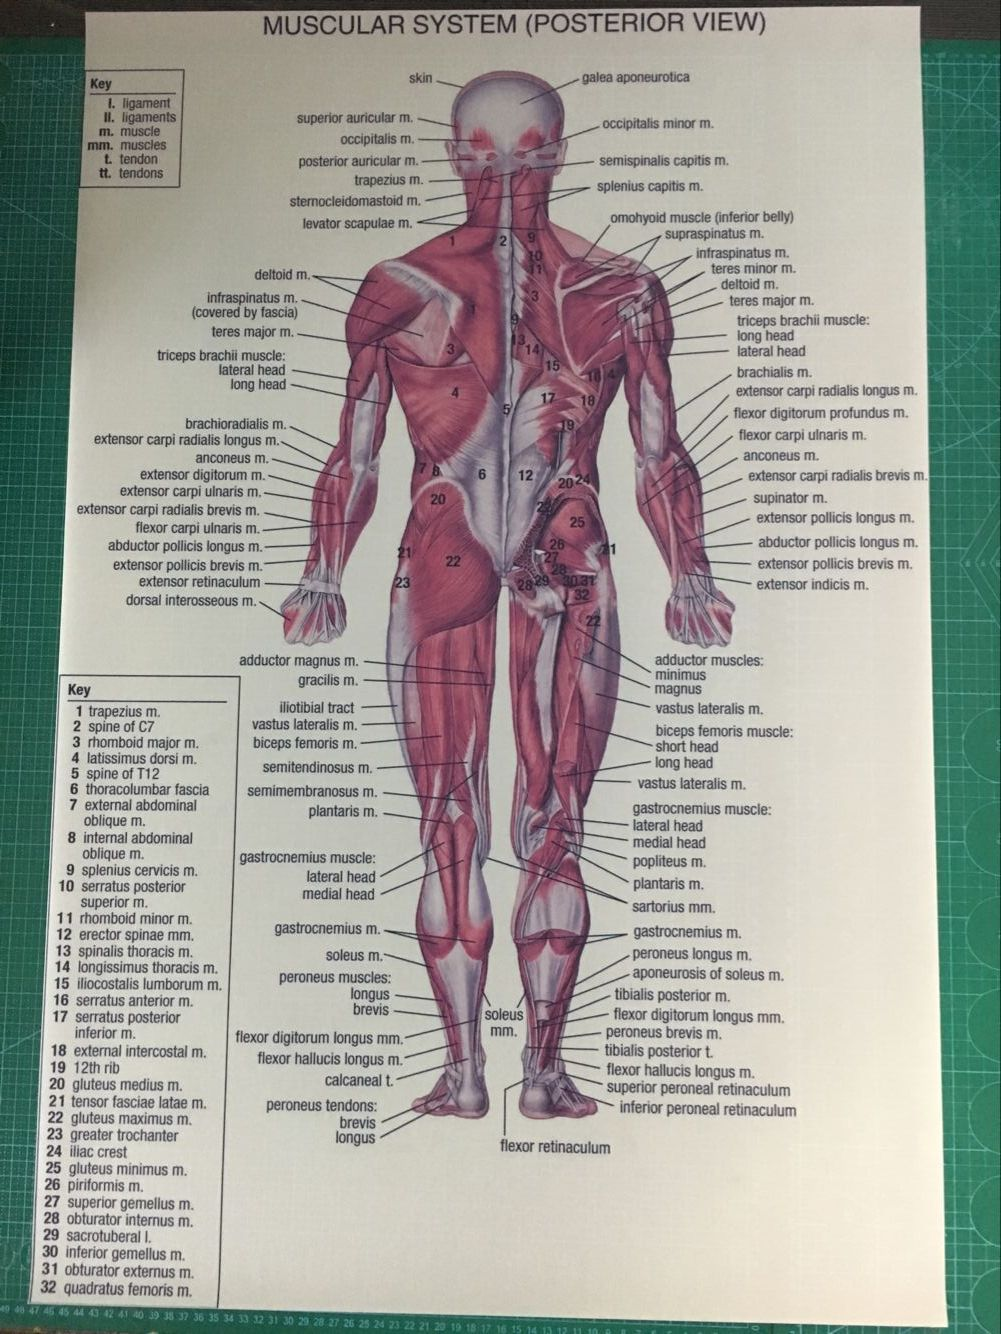 Human Anatomy Posterior Anterior View Anatomy Muscles System Art